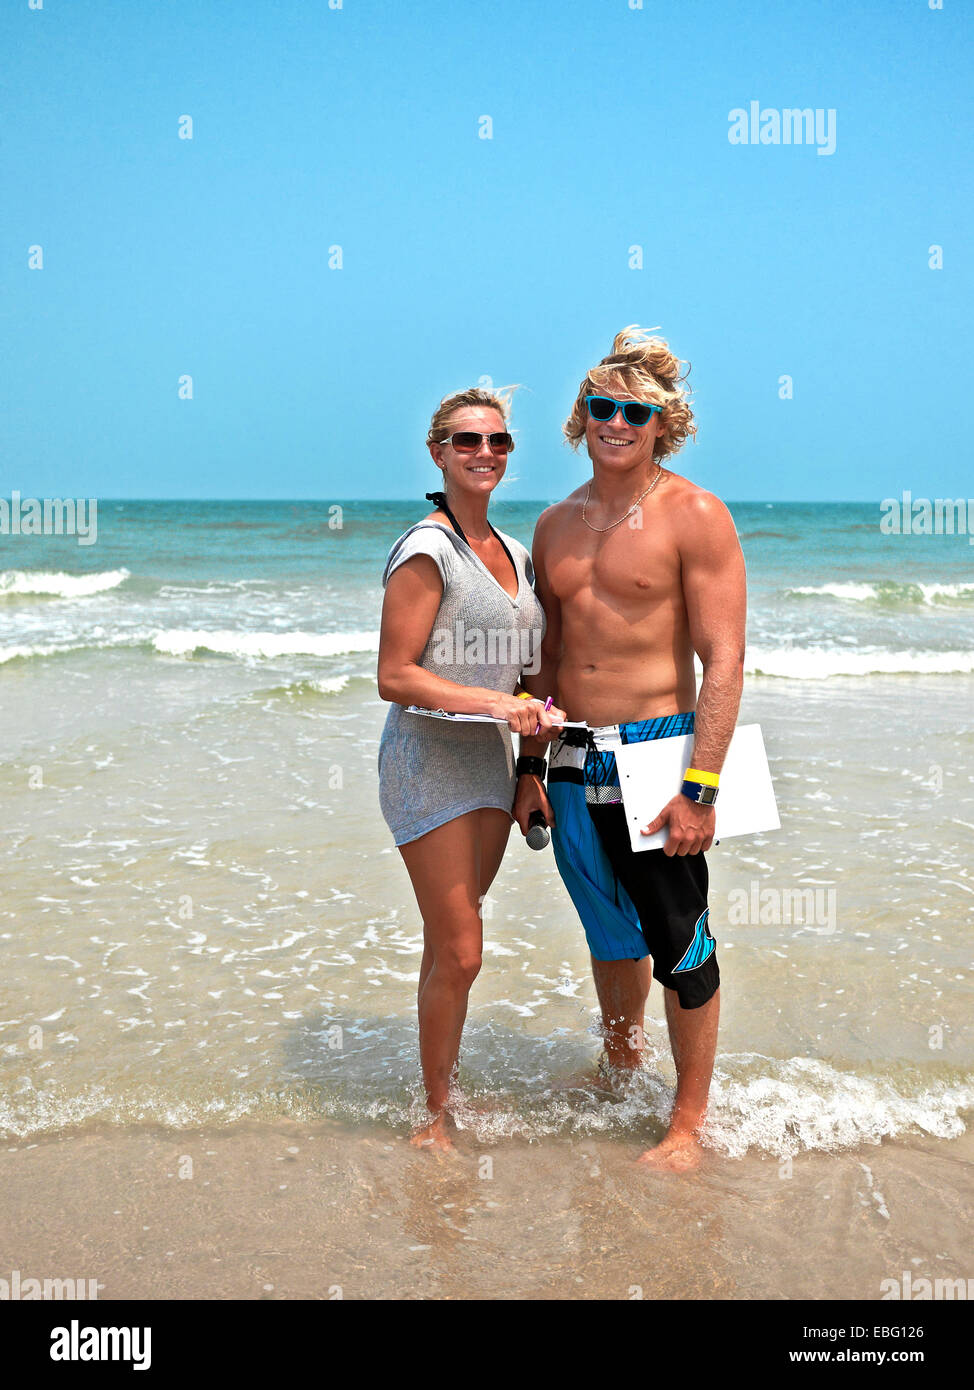 Good looking young blond haired couple smiling at camera on a Thailand beach location. S. E. Asia - Stock Image